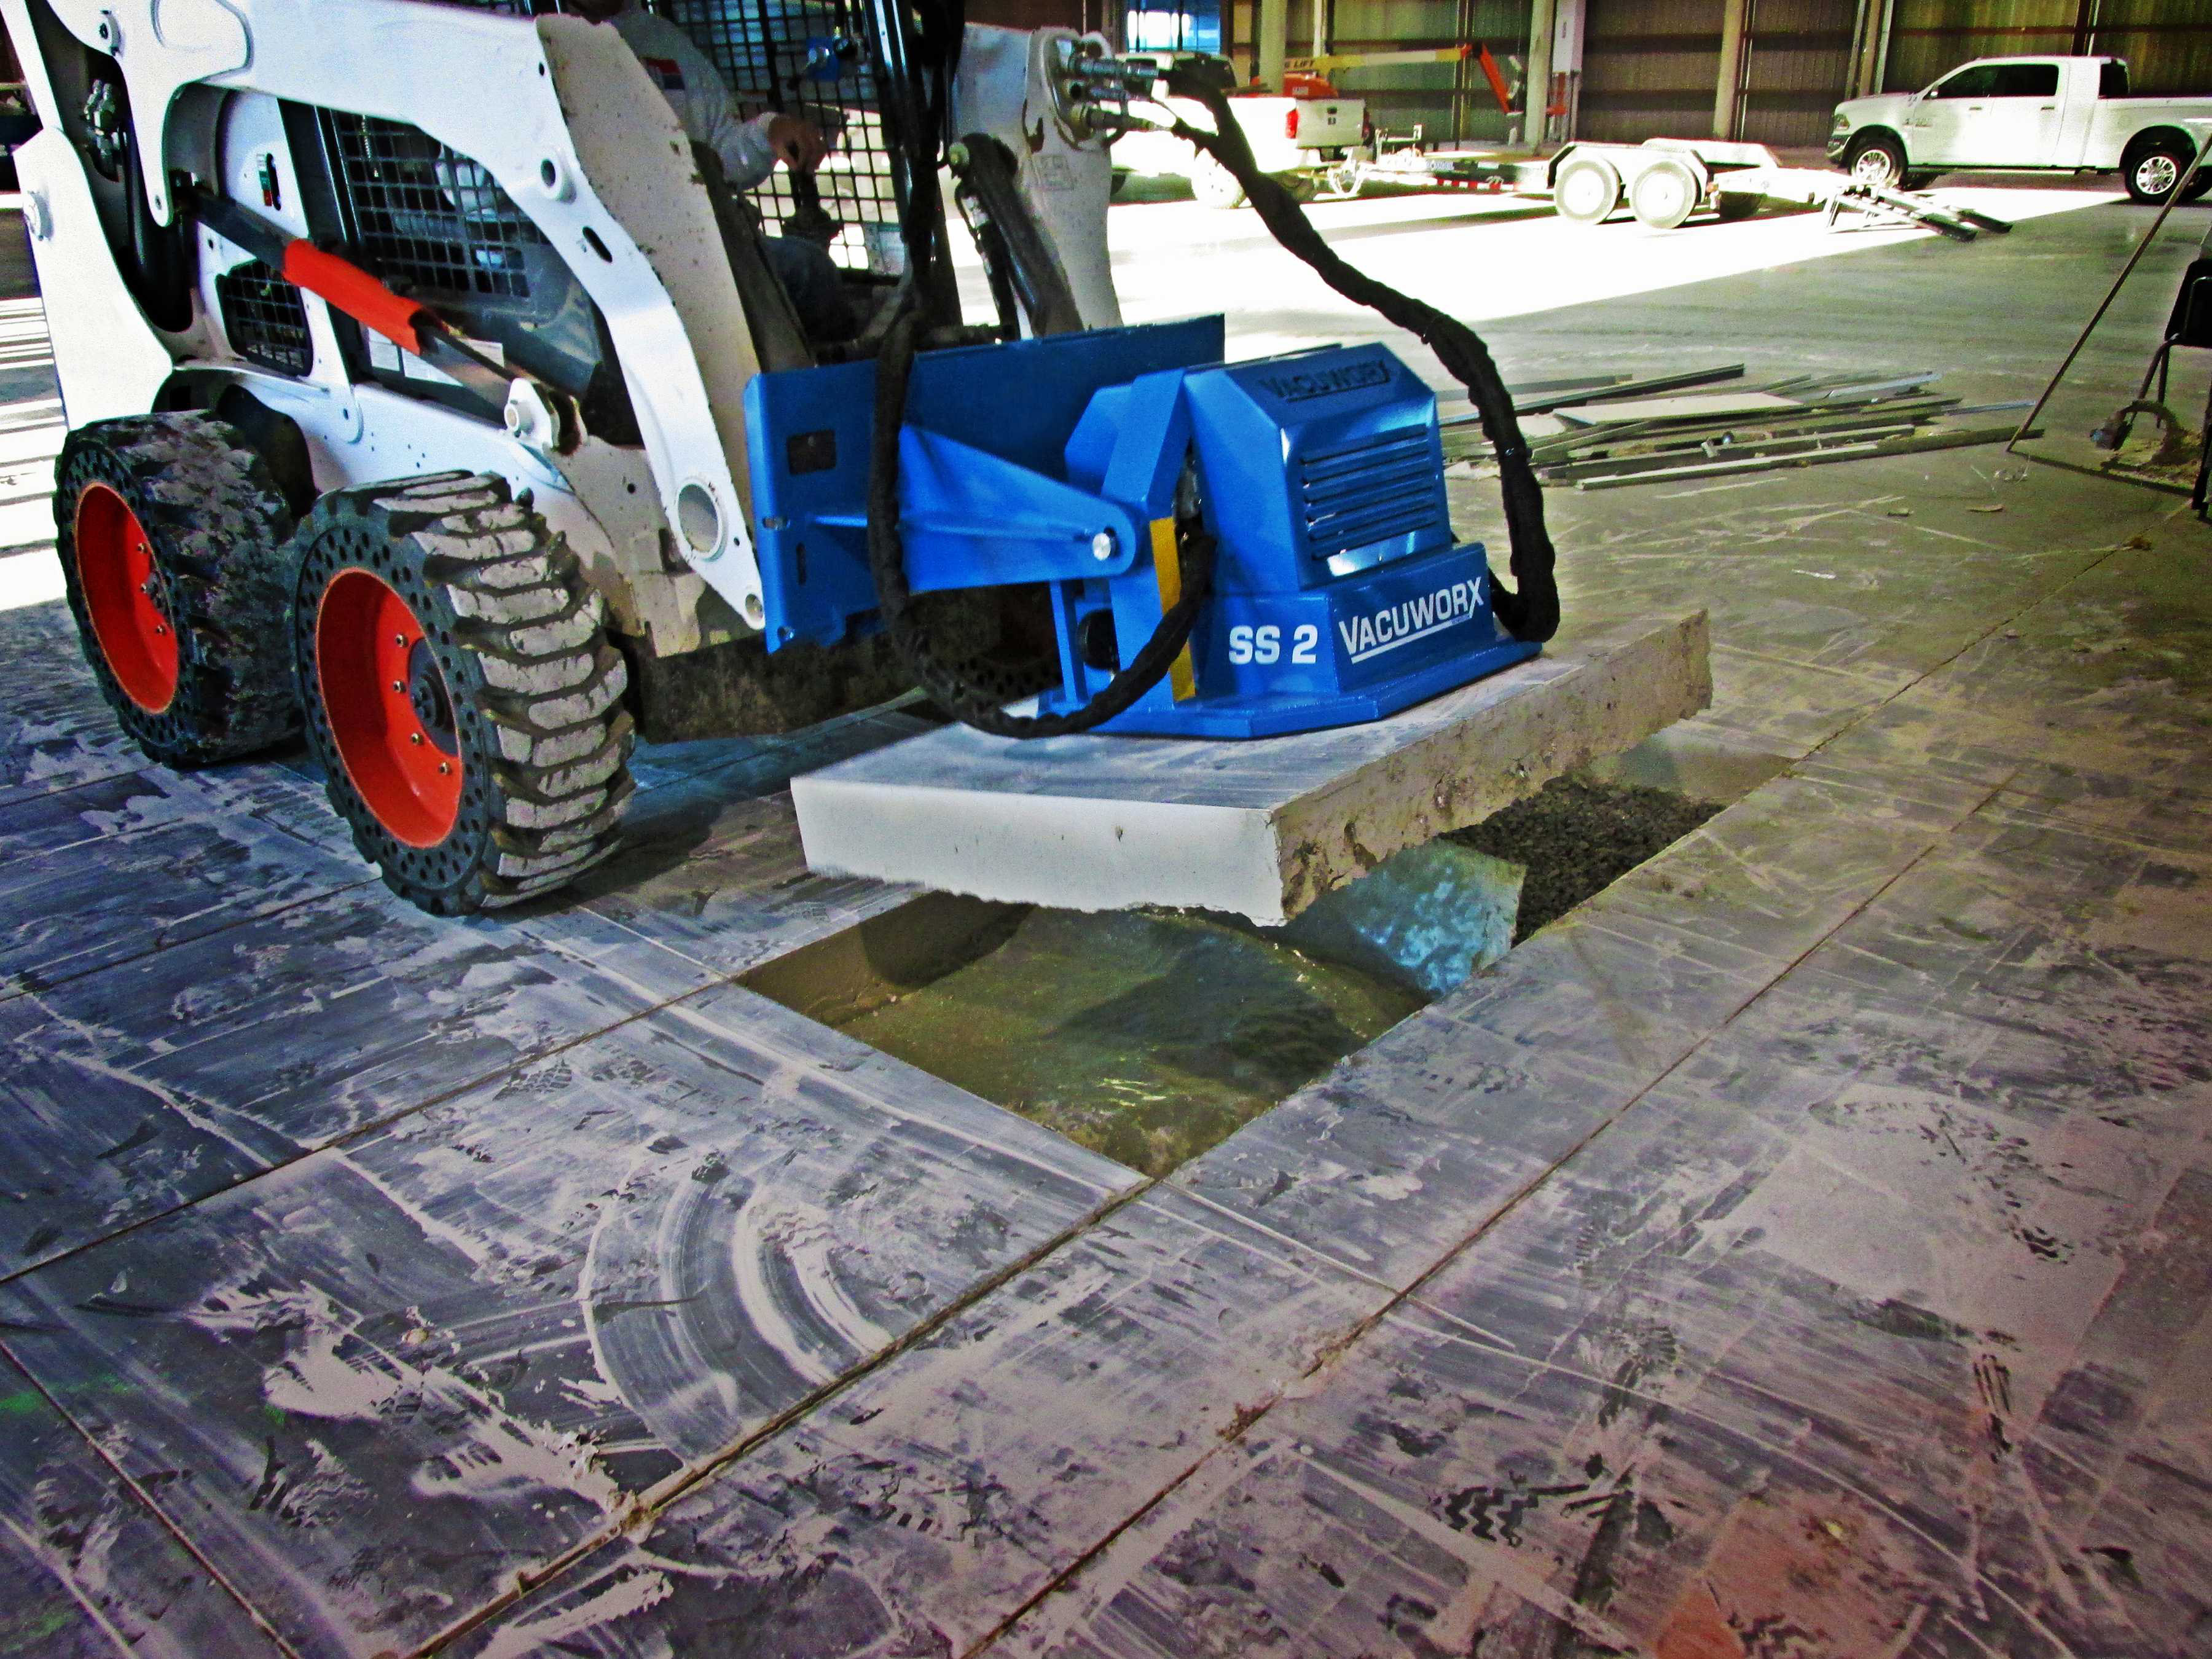 Landscapers Can Lift With Vacuworx Skid Steer Vacuum